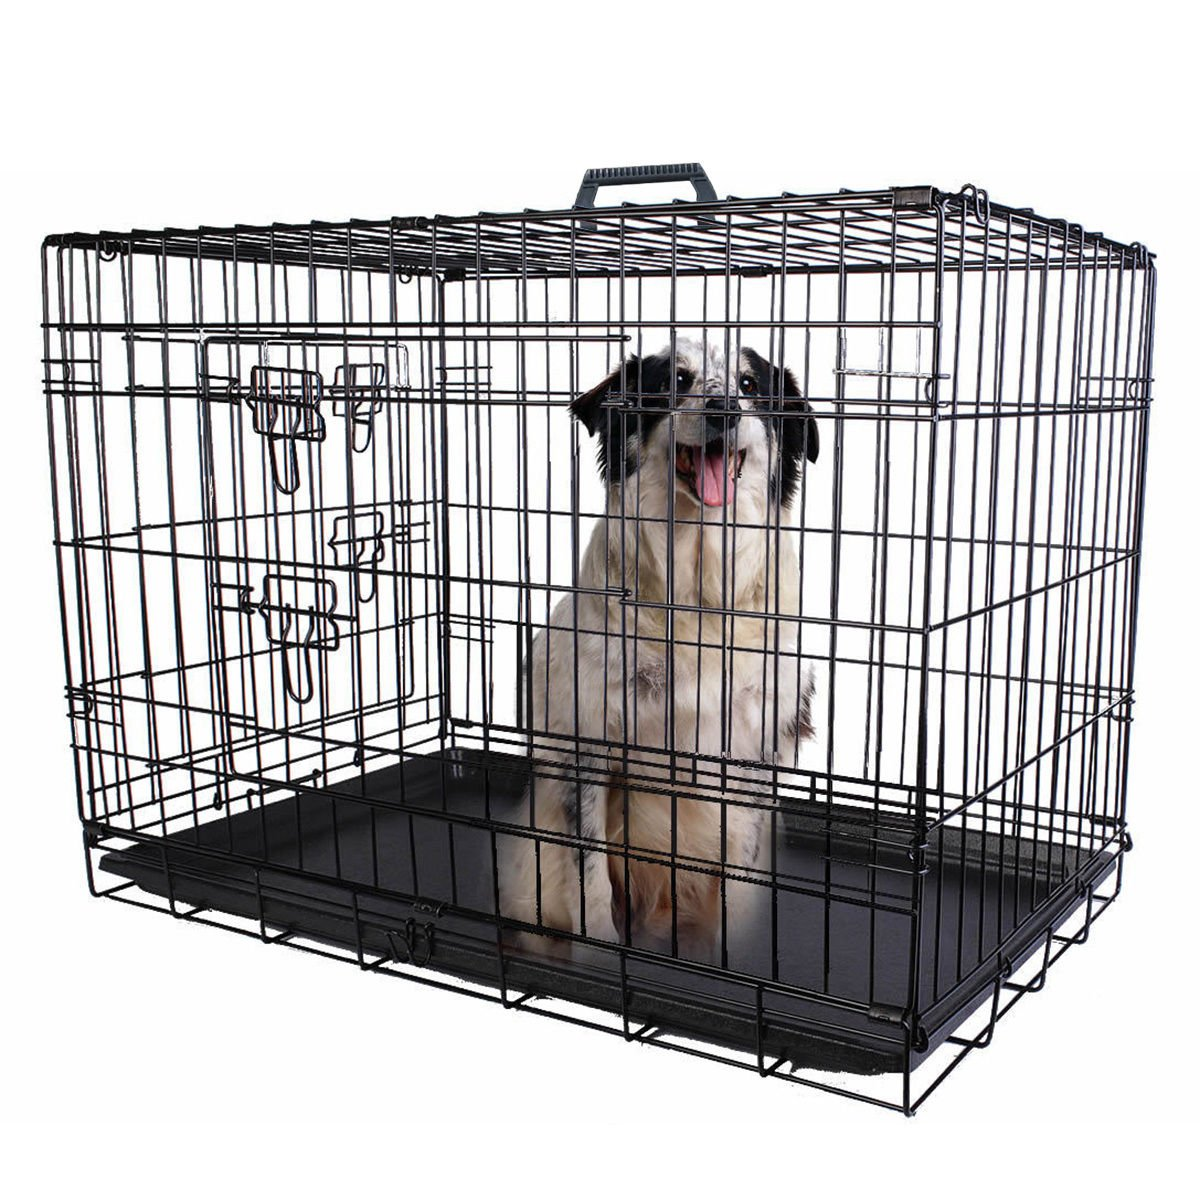 Eaglelnw 36'' 2 Doors Wire Folding Pet Crate Dog Cage Suitcase Kennel Playpen by Eaglelnw (Image #1)